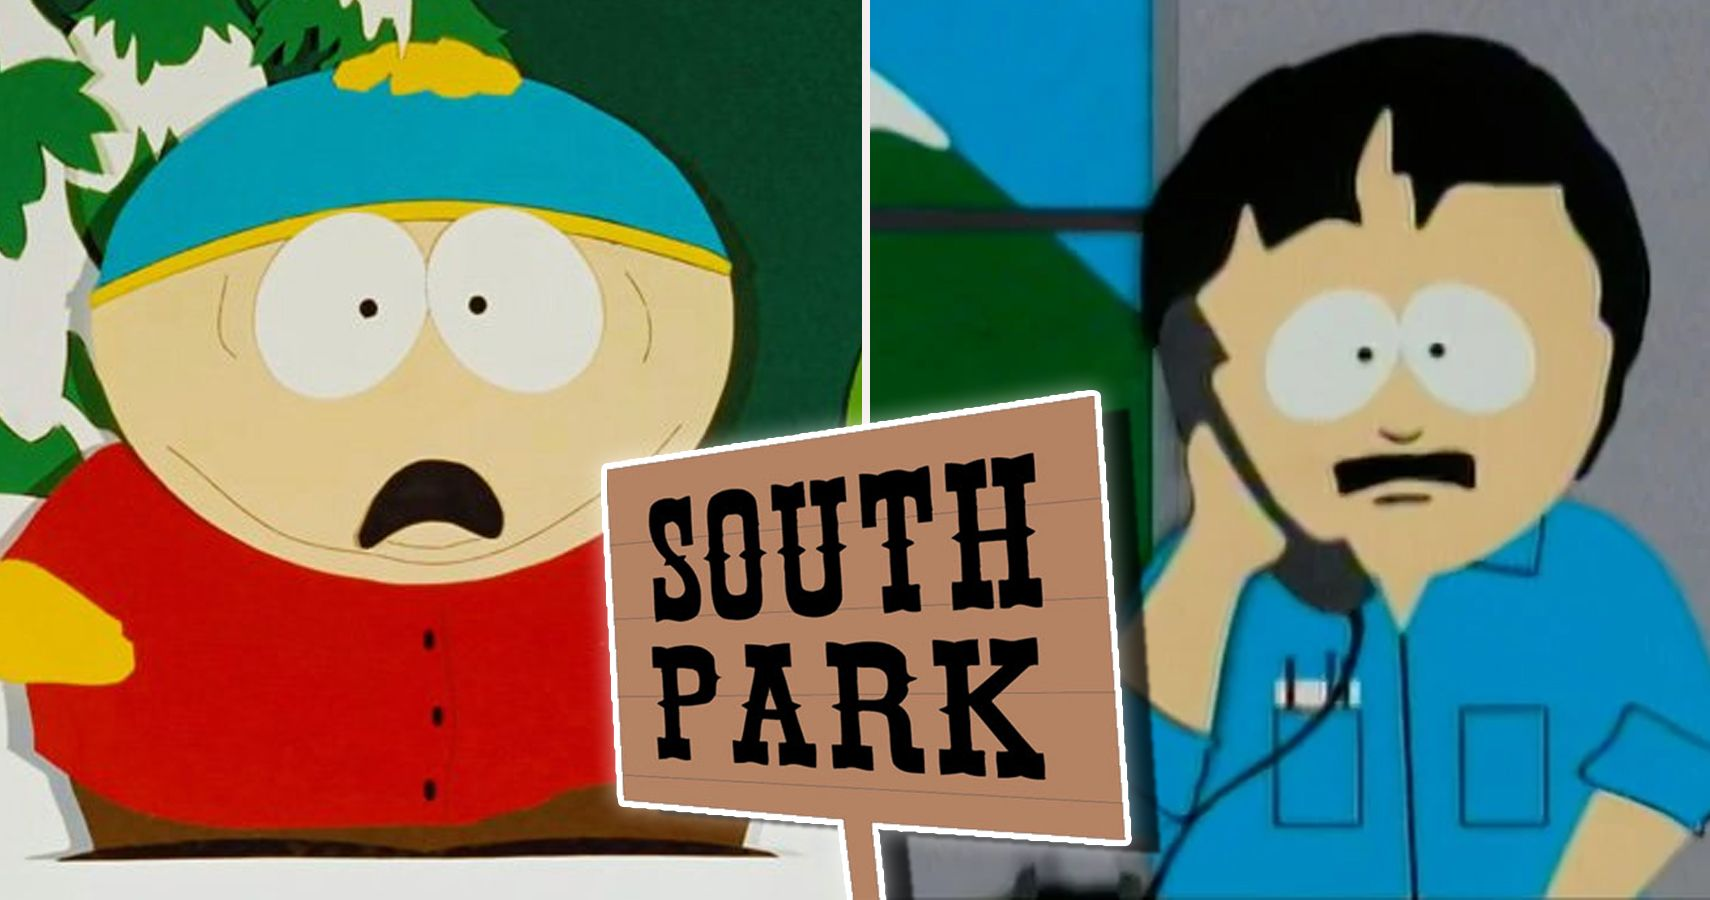 20 Cool Facts Only True Fans Know About South Park Thegamer